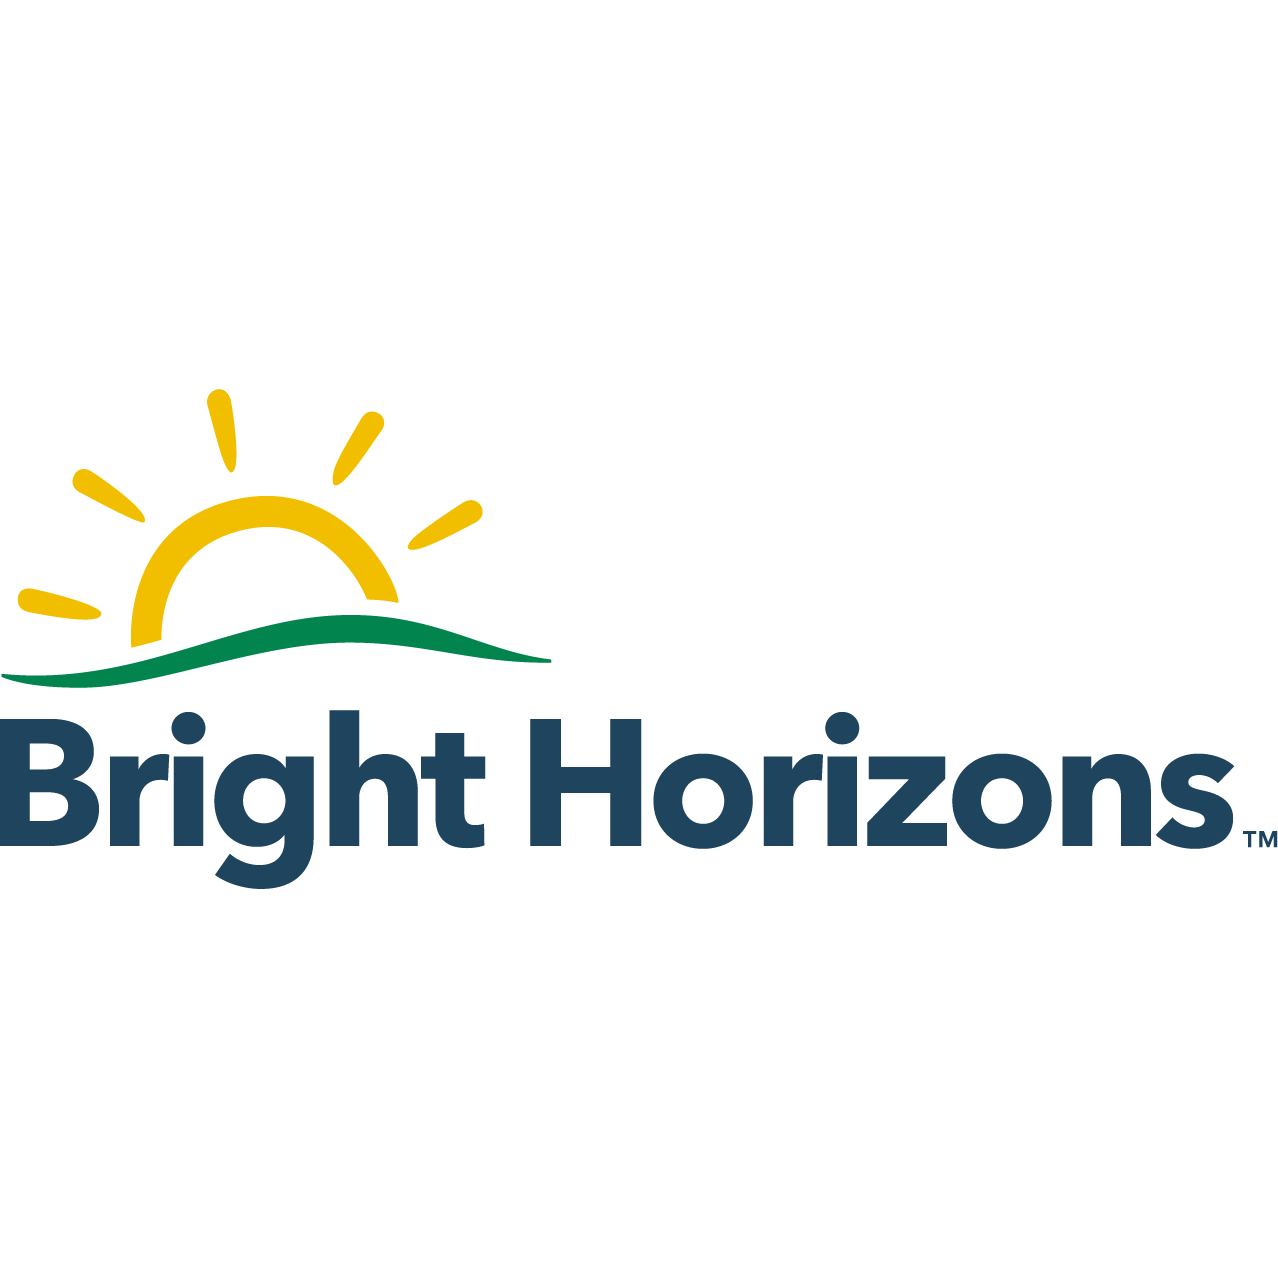 Bright Horizons Bishopbriggs Early Learning and Childcare - Glasgow, Dunbartonshire G64 2NN - 03300 576462 | ShowMeLocal.com